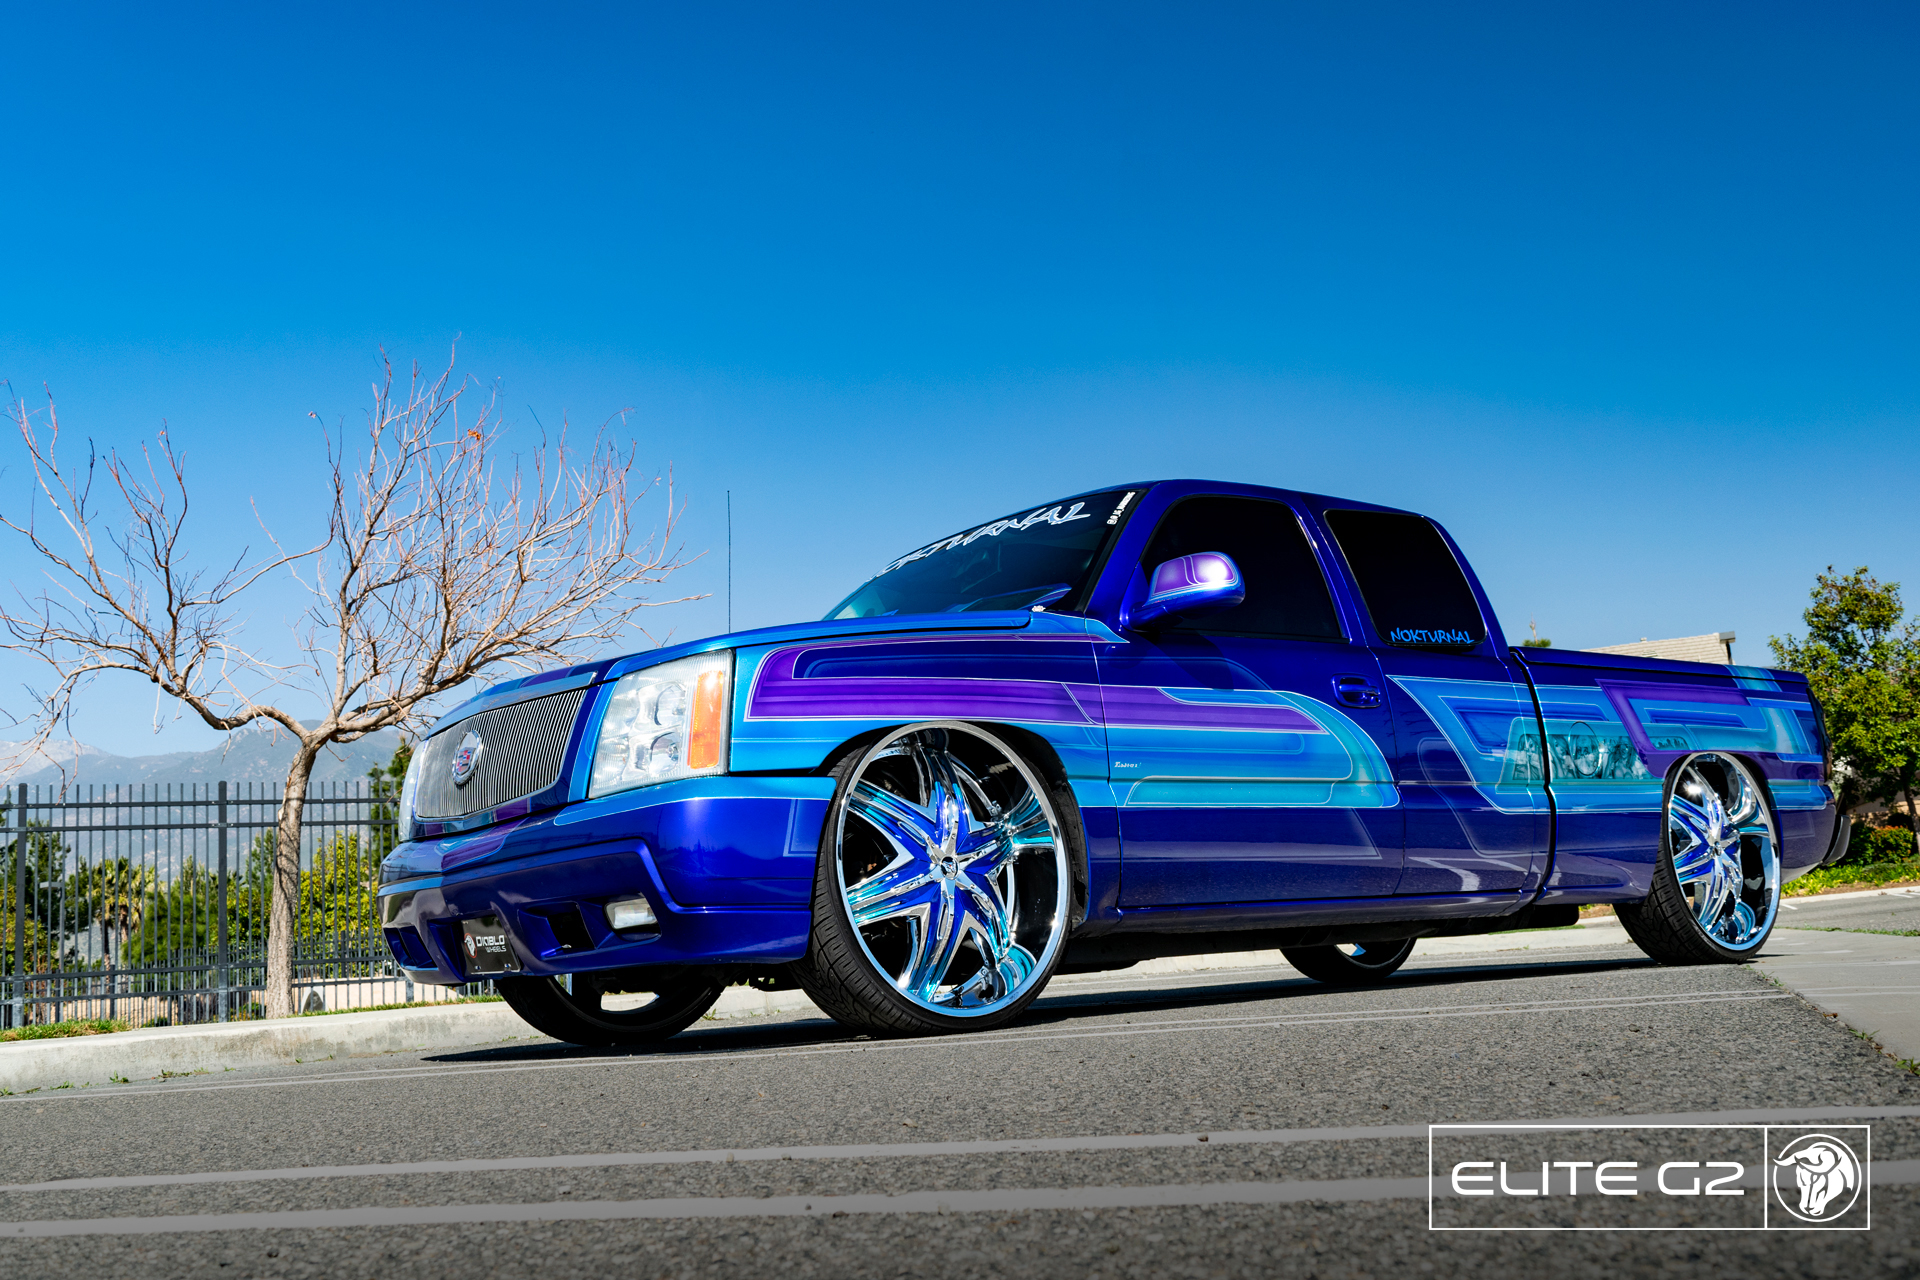 Elite G2 Diablo Wheels Chevrolet Silverado NOK Custom Truck